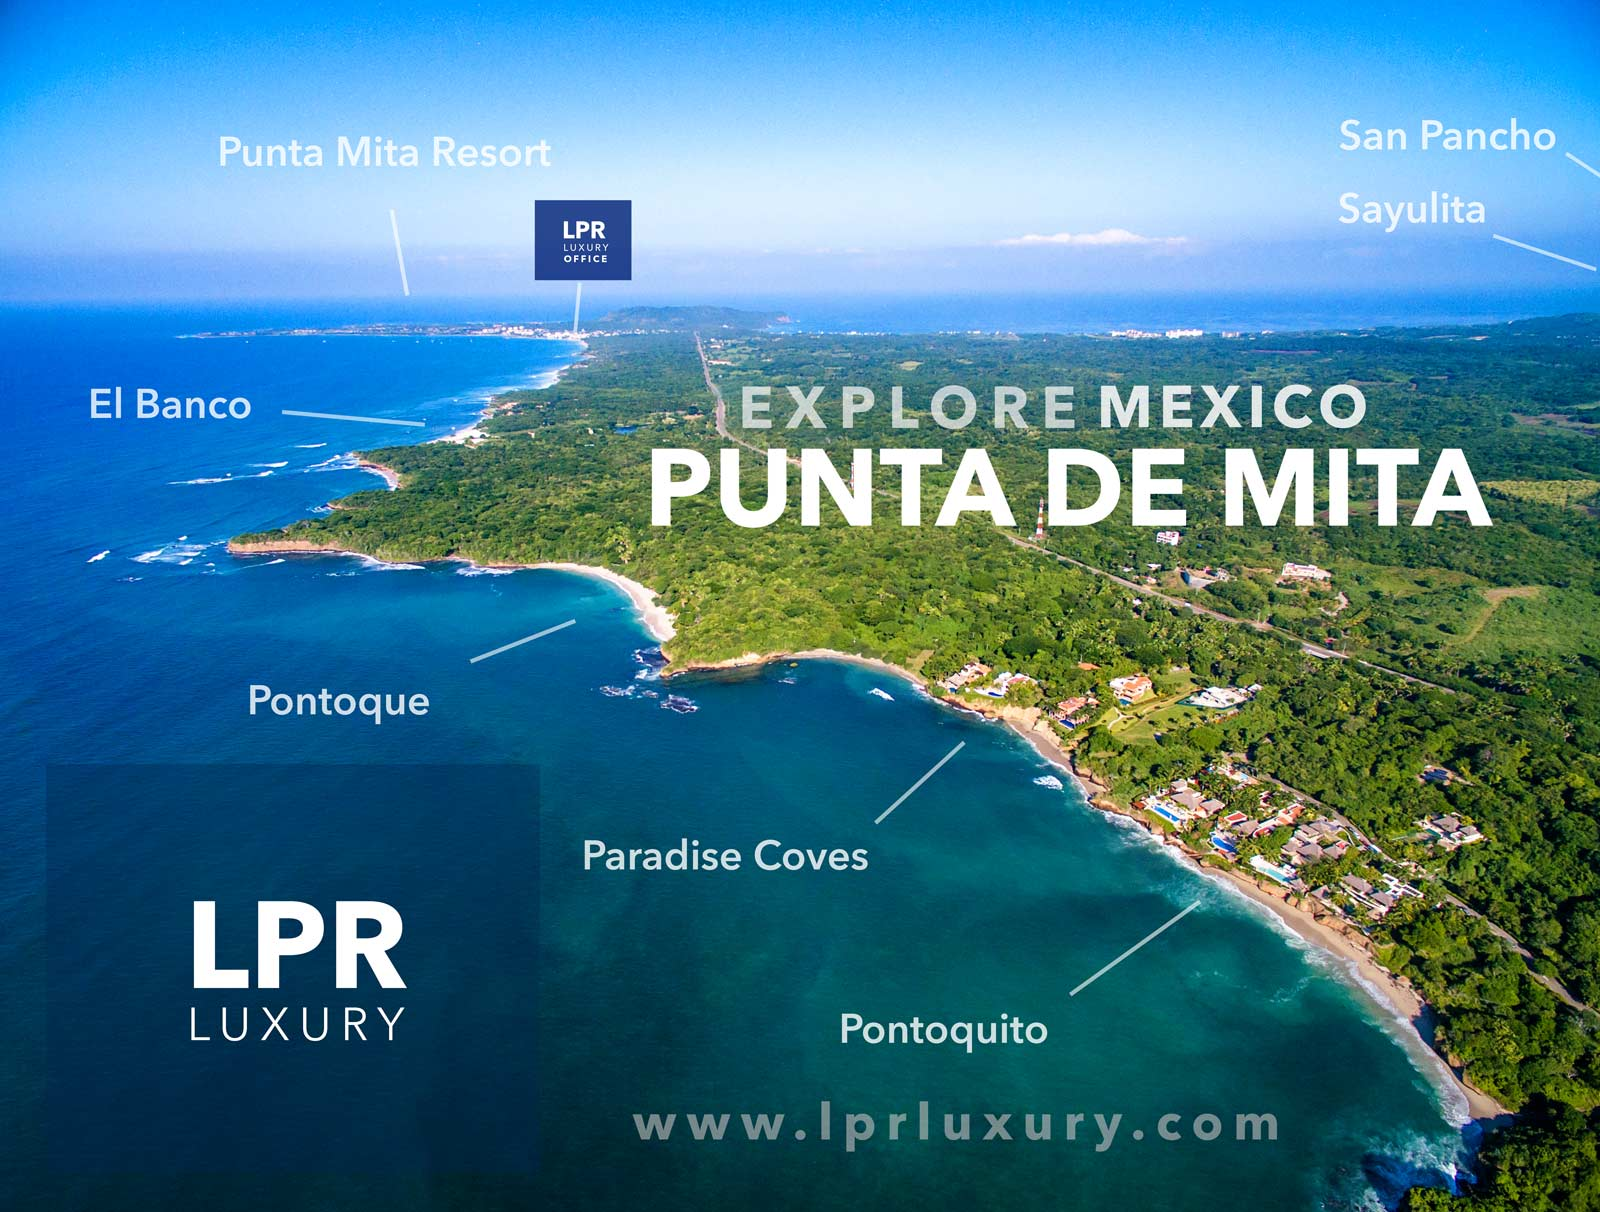 Explore the Punta de Mita peninsula - Riviera Nayarit, Mexico